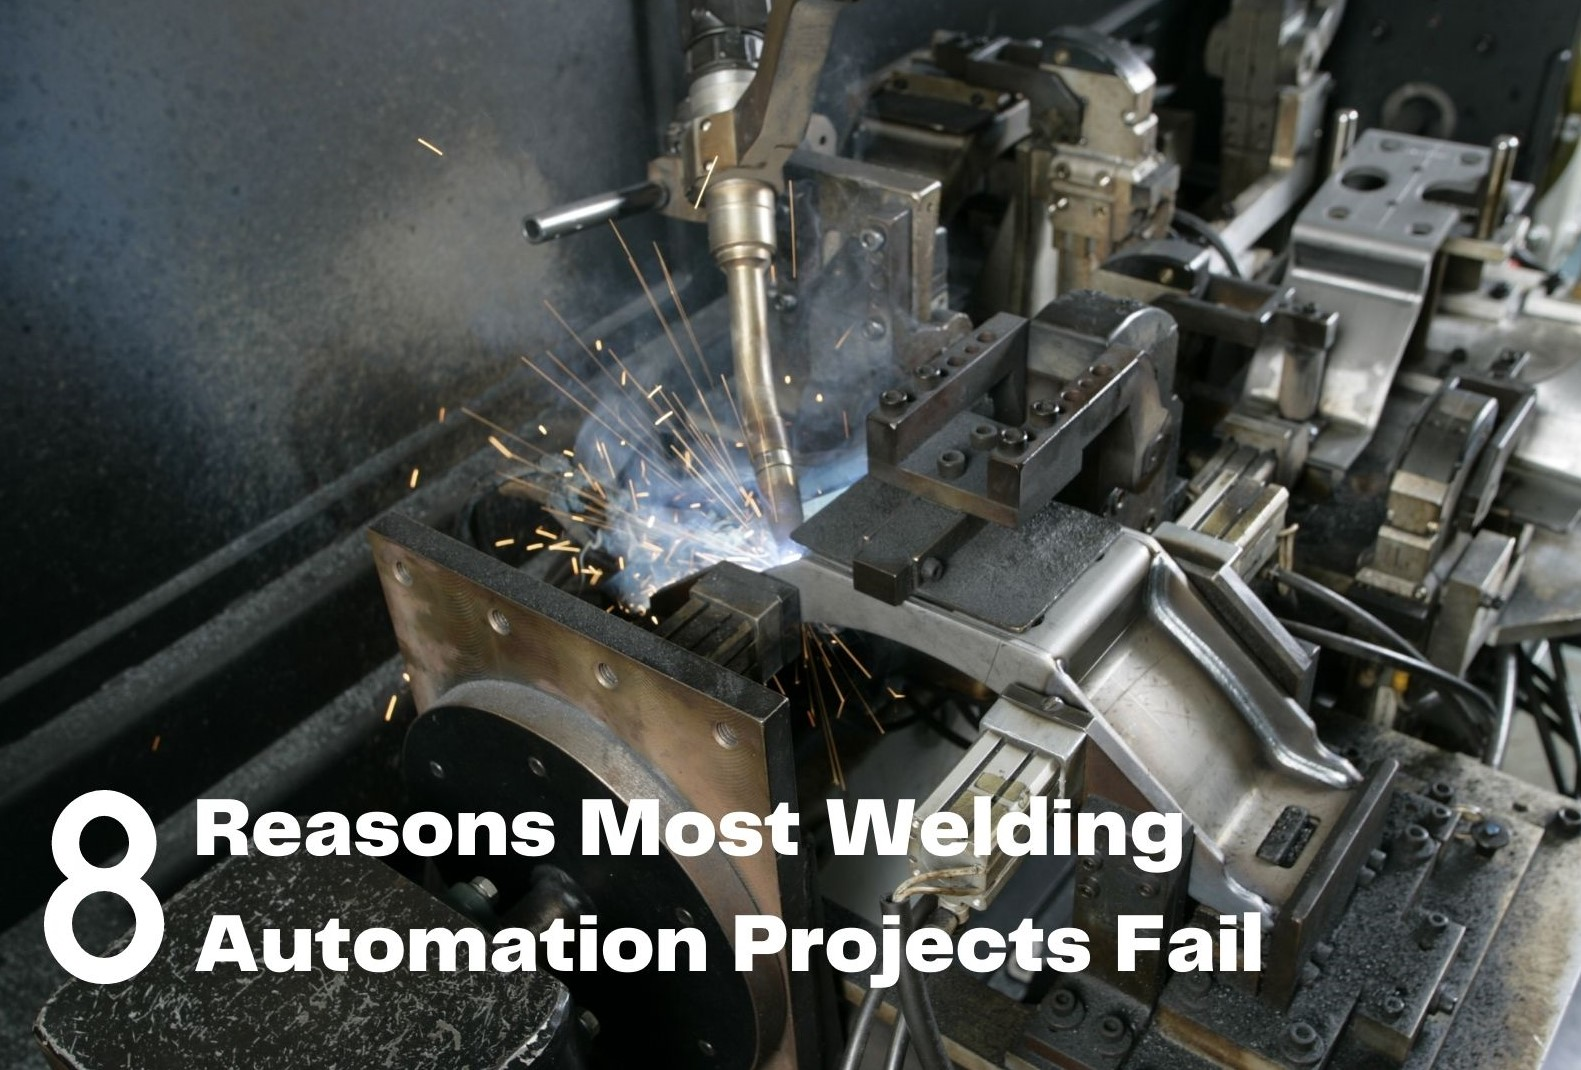 8 Reasons Most Welding Automation Projects Fail